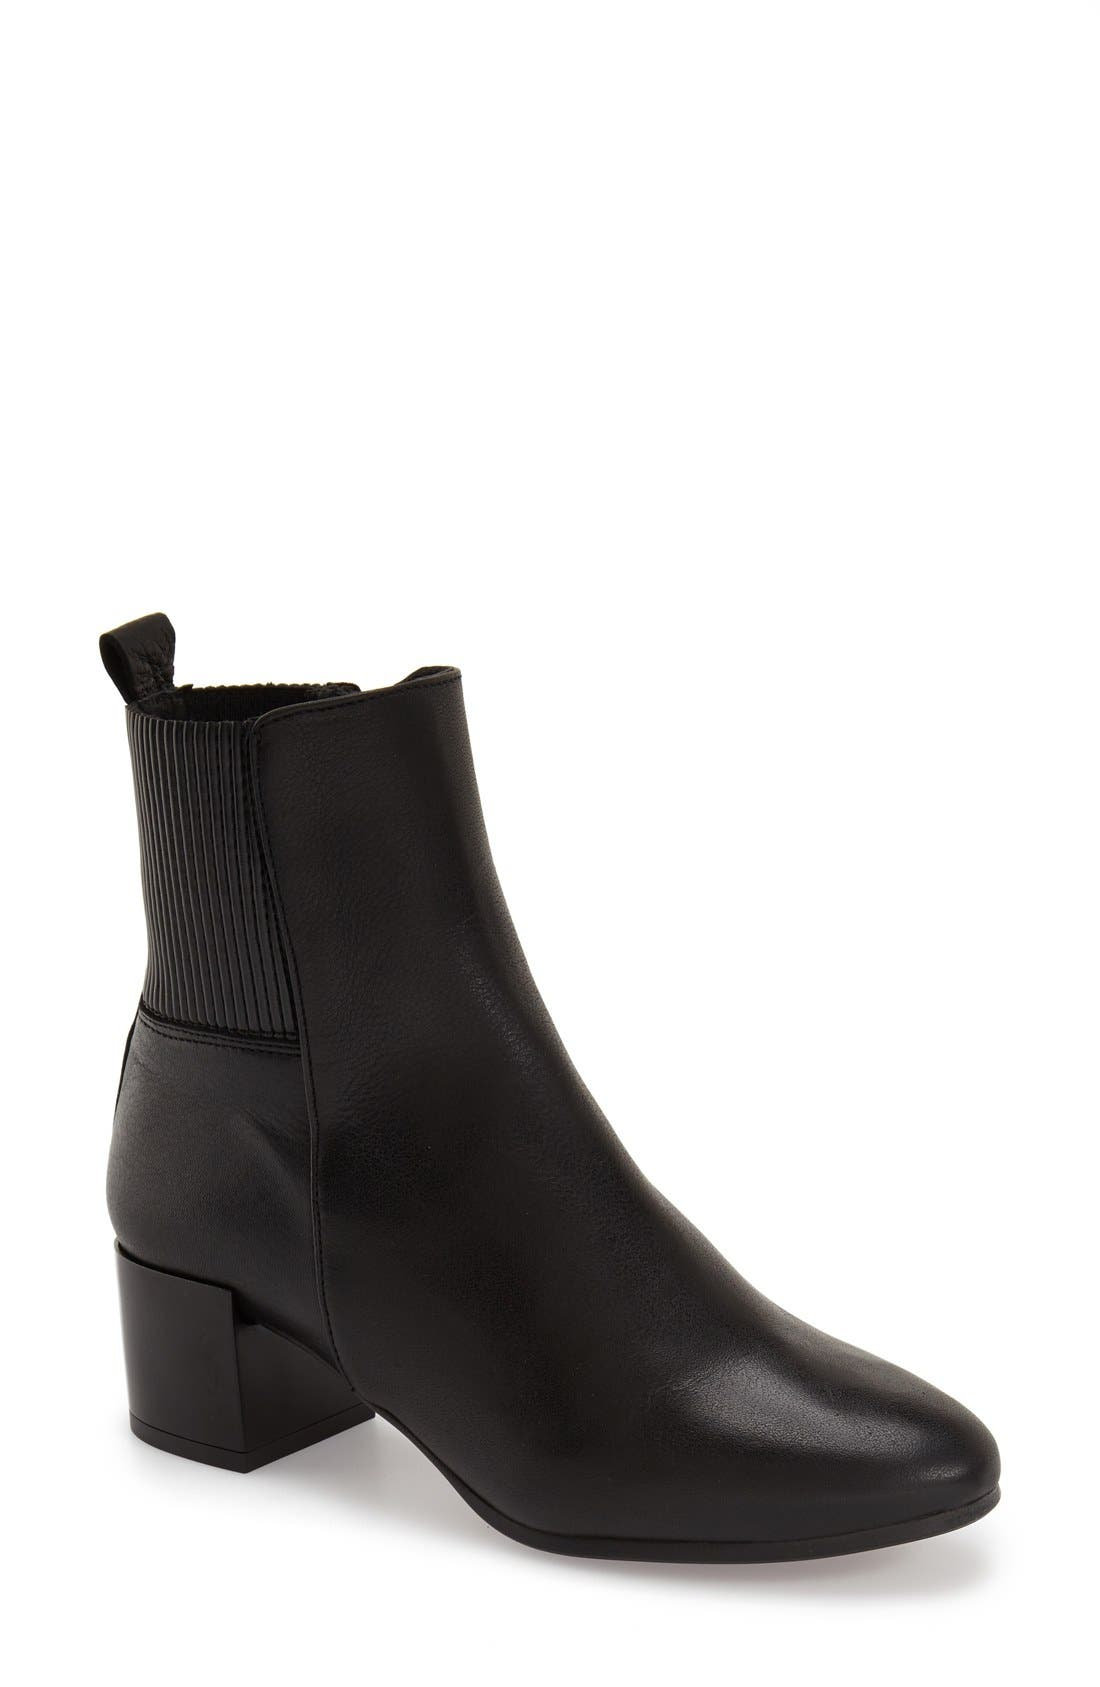 Main Image - Topshop 'Marbles' Ankle Boot (Women)